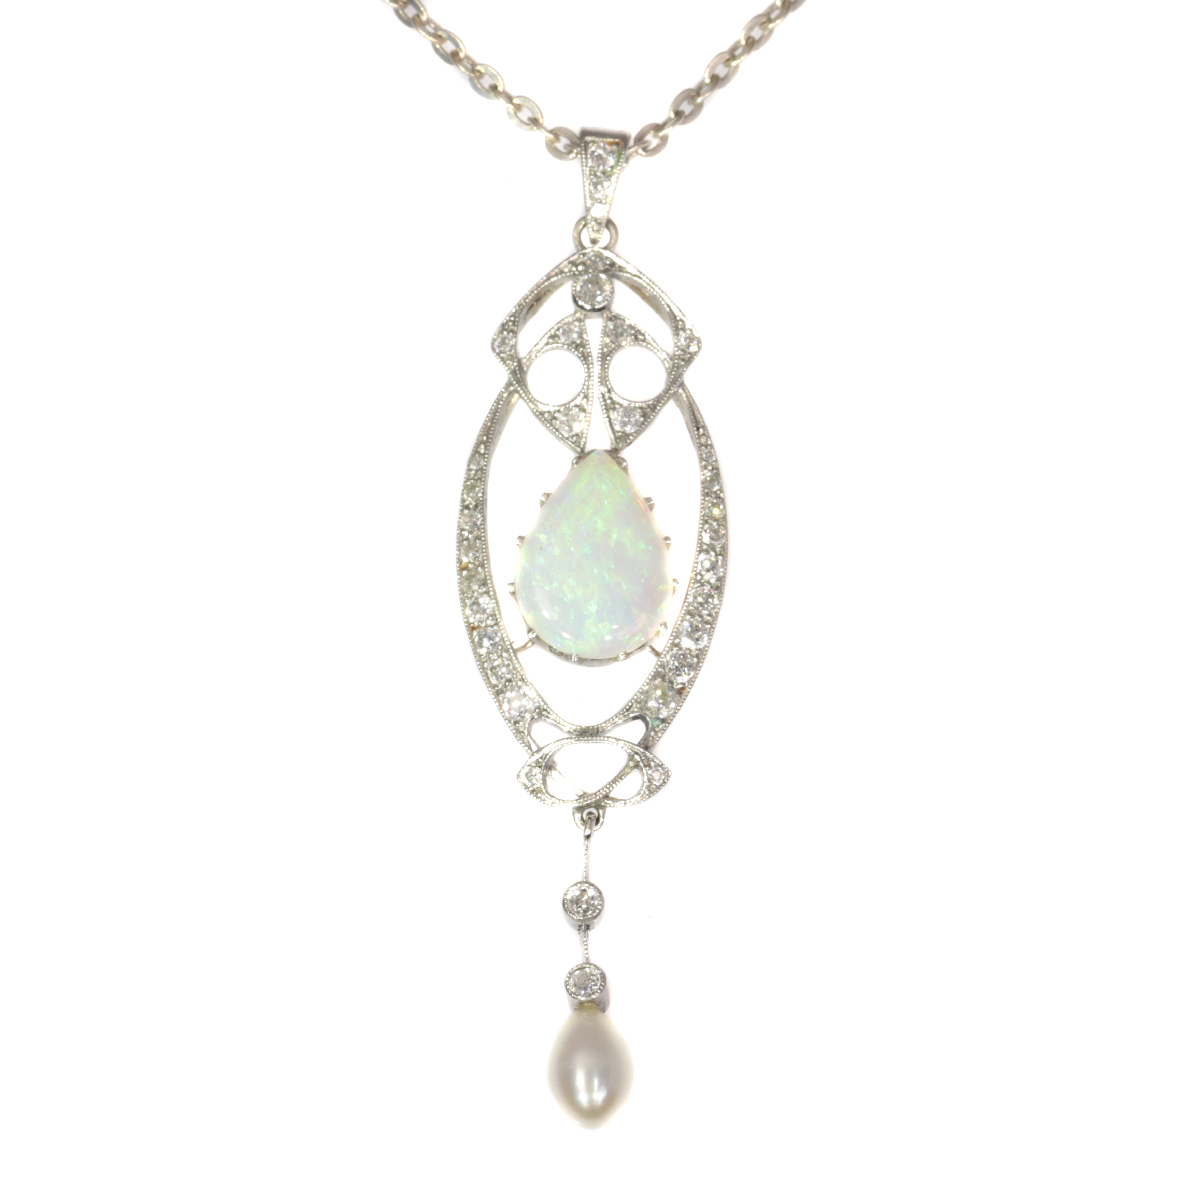 Vintage platinum Art Nouveau pendant with diamonds and large opal